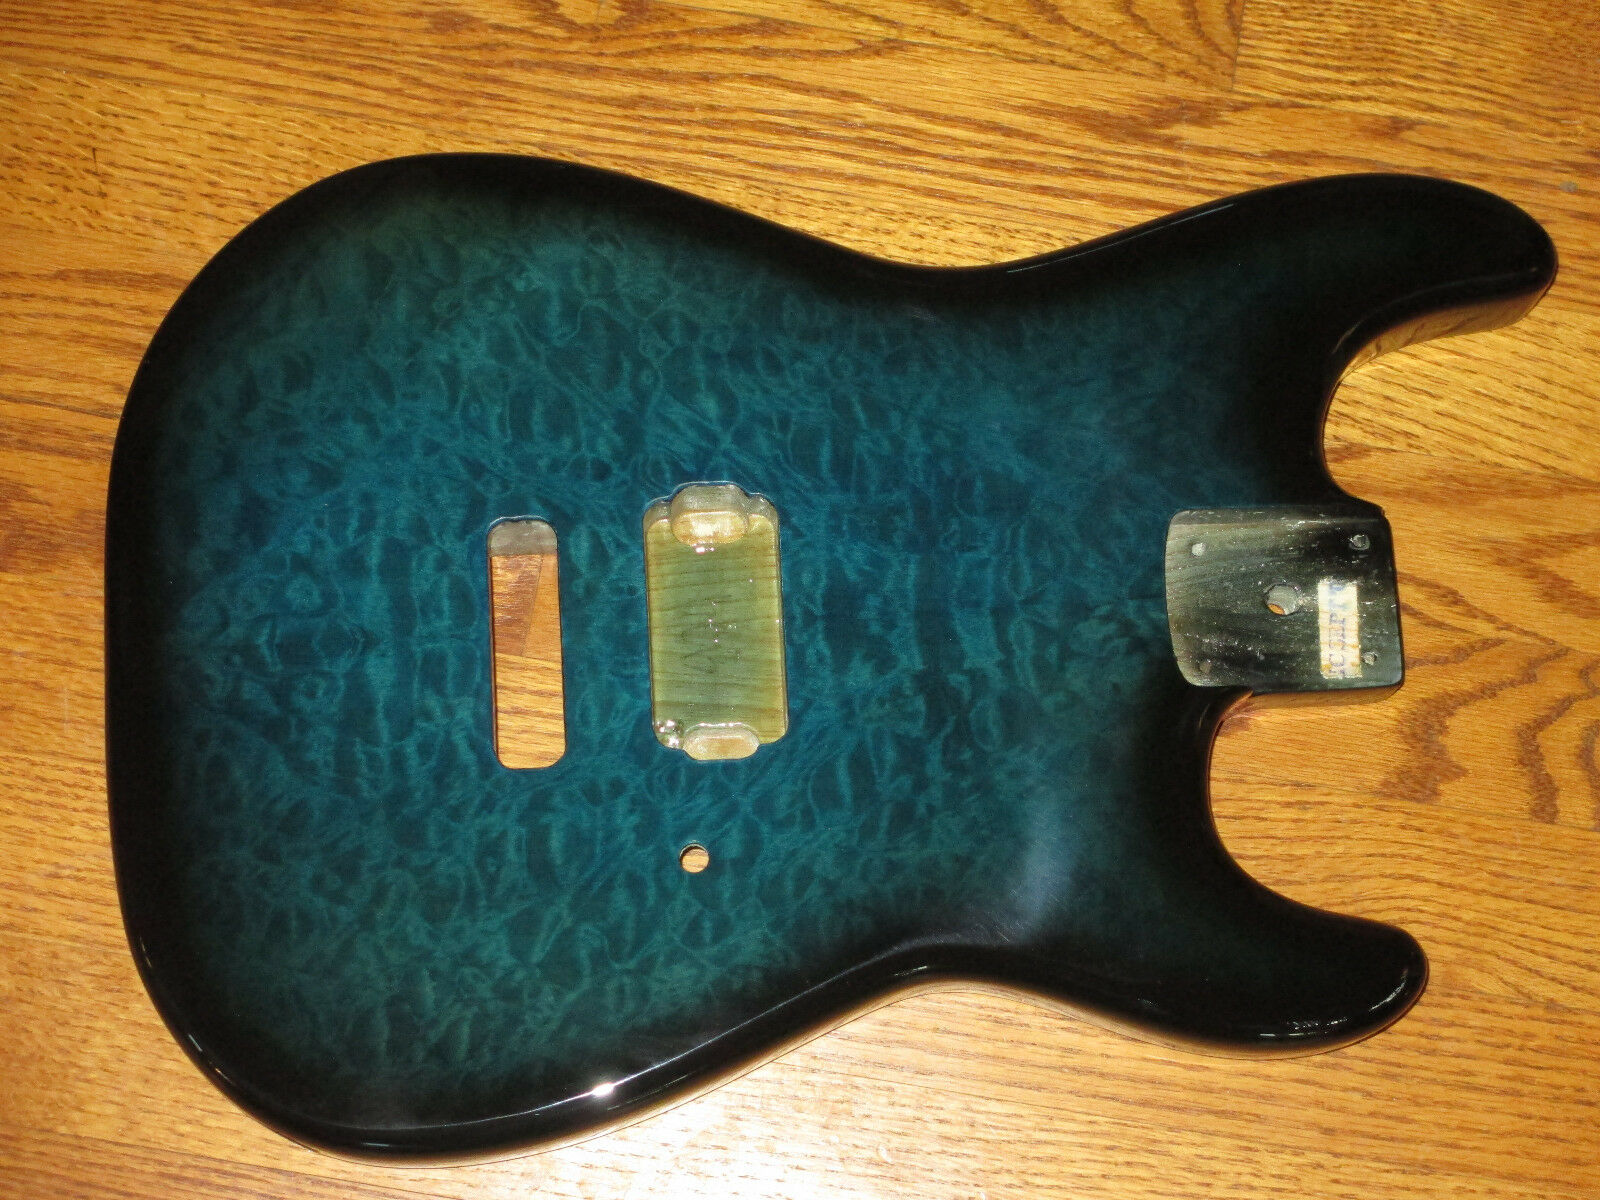 MIGHTY MITE BODY FITS FENDER STRATOCASTER 2 3 16th GUITAR NECK NATURAL QUILT TOP